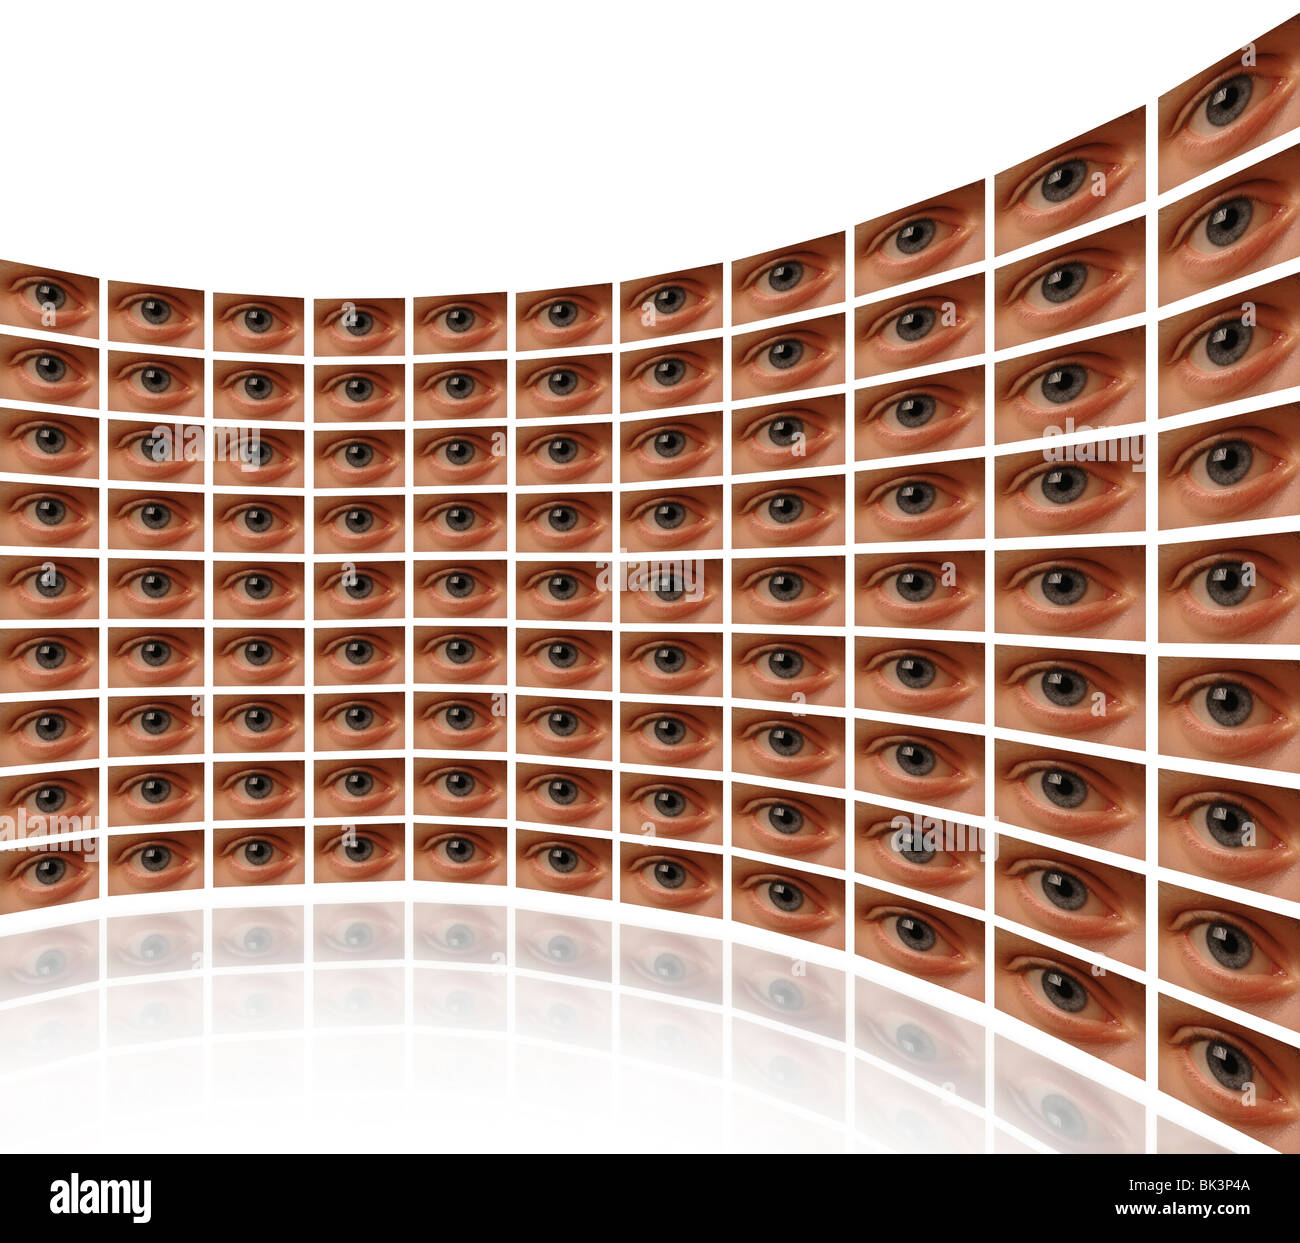 Curved wall of video screens with eyes White background - Stock Image